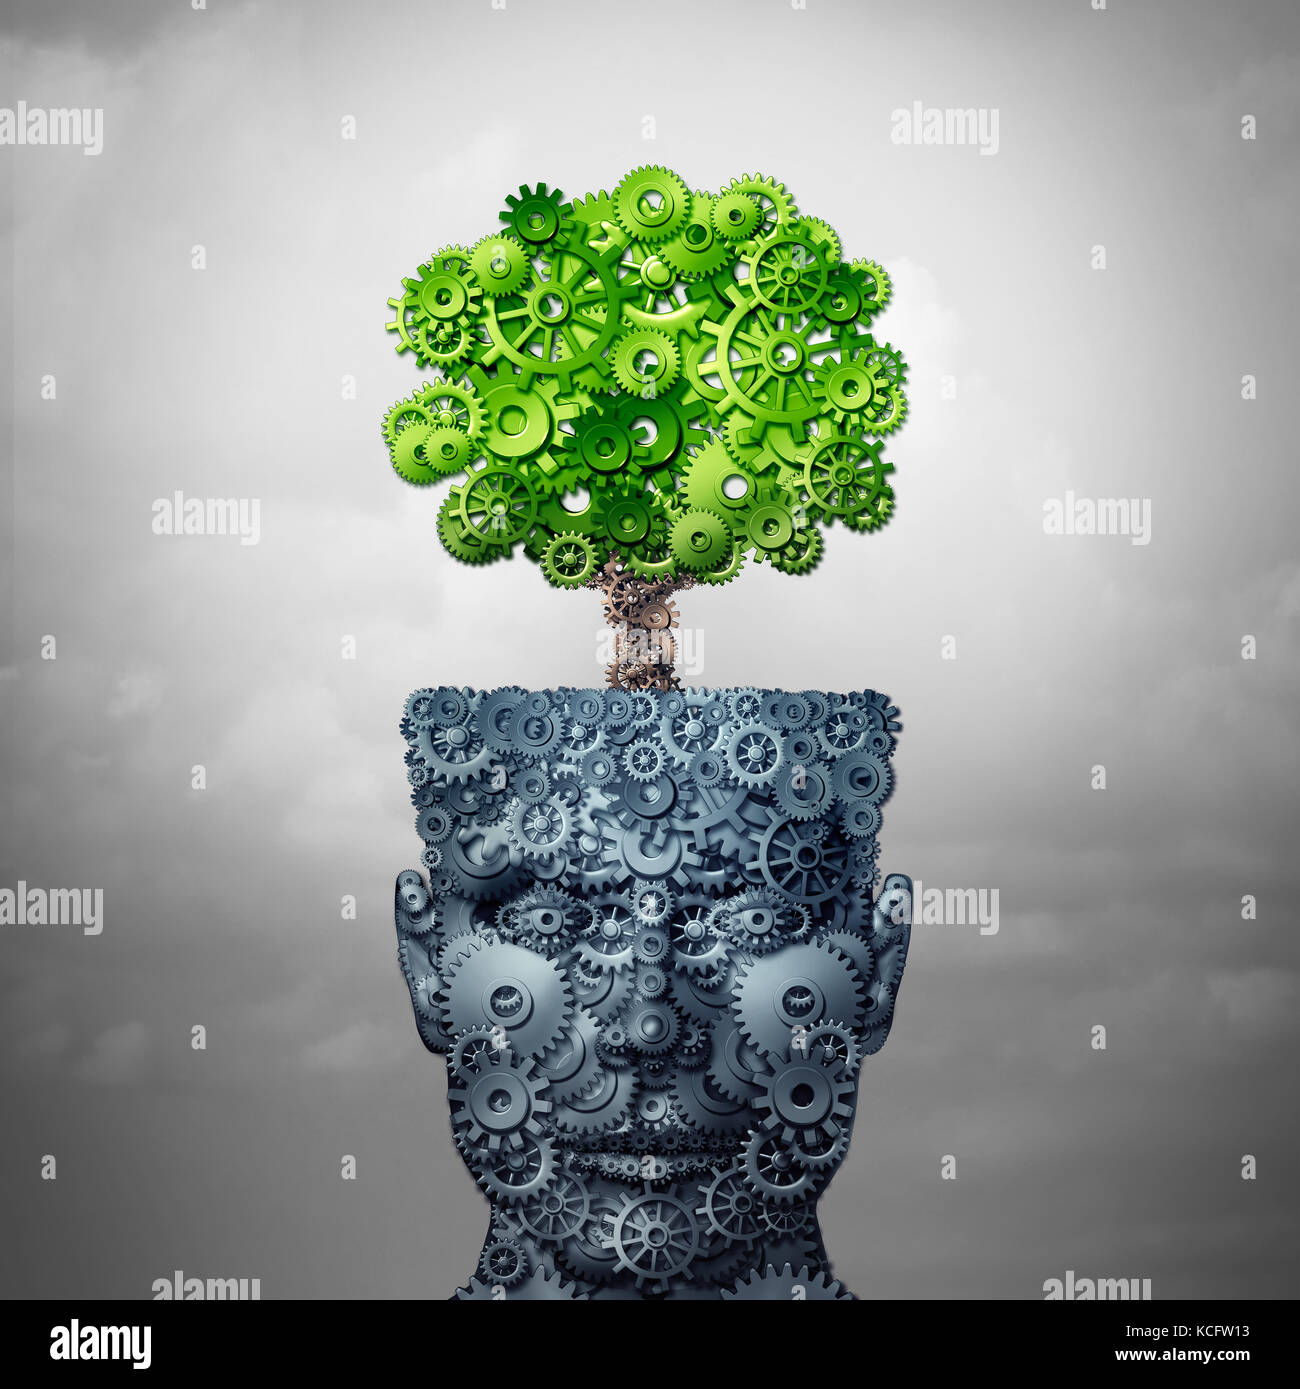 Technology growth and business training and computing development as artificial intelligence concept as a human - Stock Image